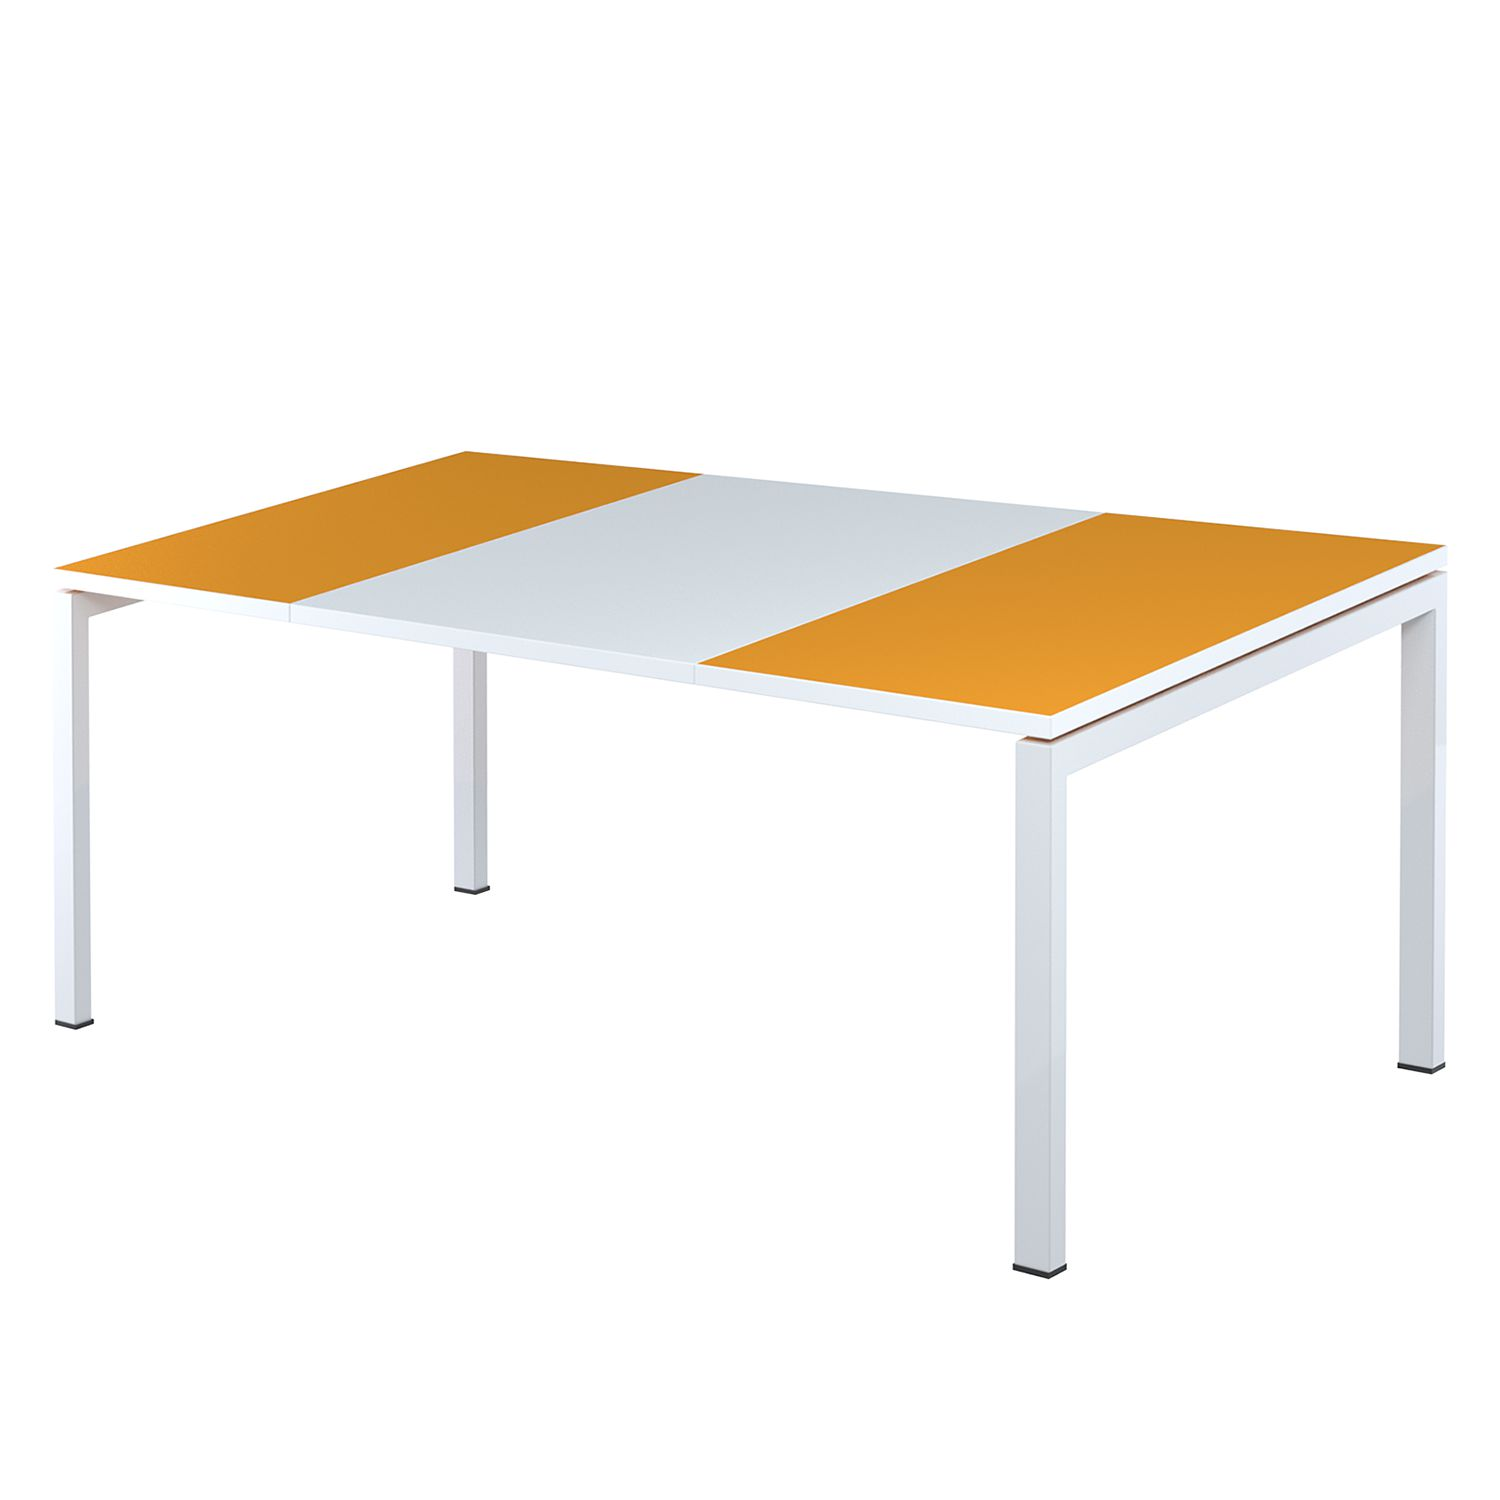 Bureau easyDesk - Wit/oranje - 160x80cm, easy Office und Paperflow